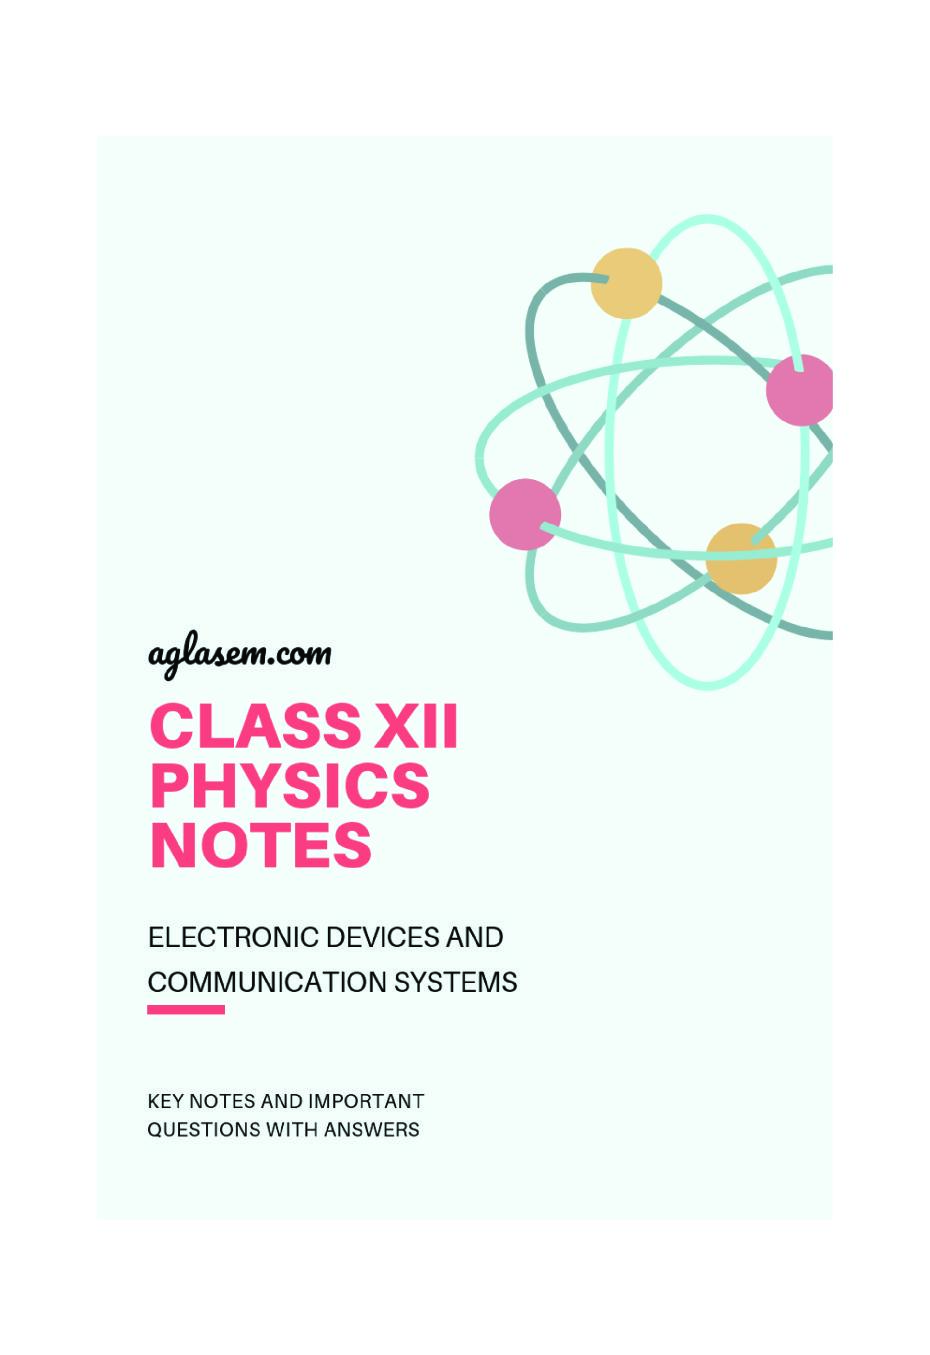 Class 12 Physics Notes for Electronic Devices and Communication Systems